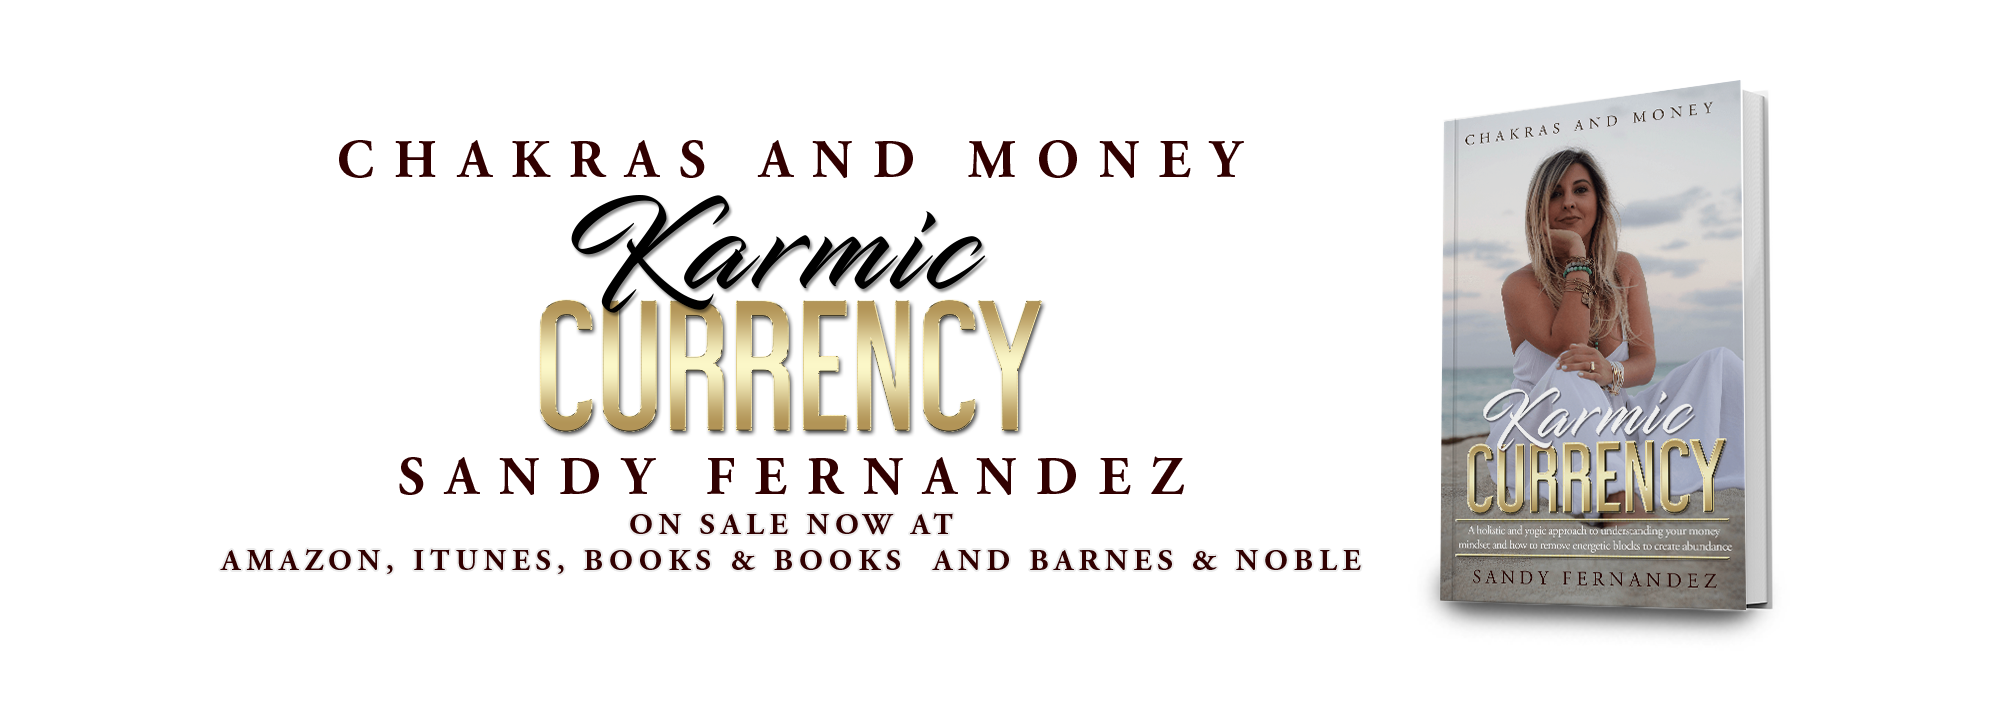 Chakras and Money - Your Karmic Currency by available now on Amazon, iTunes and Barnes and Noble